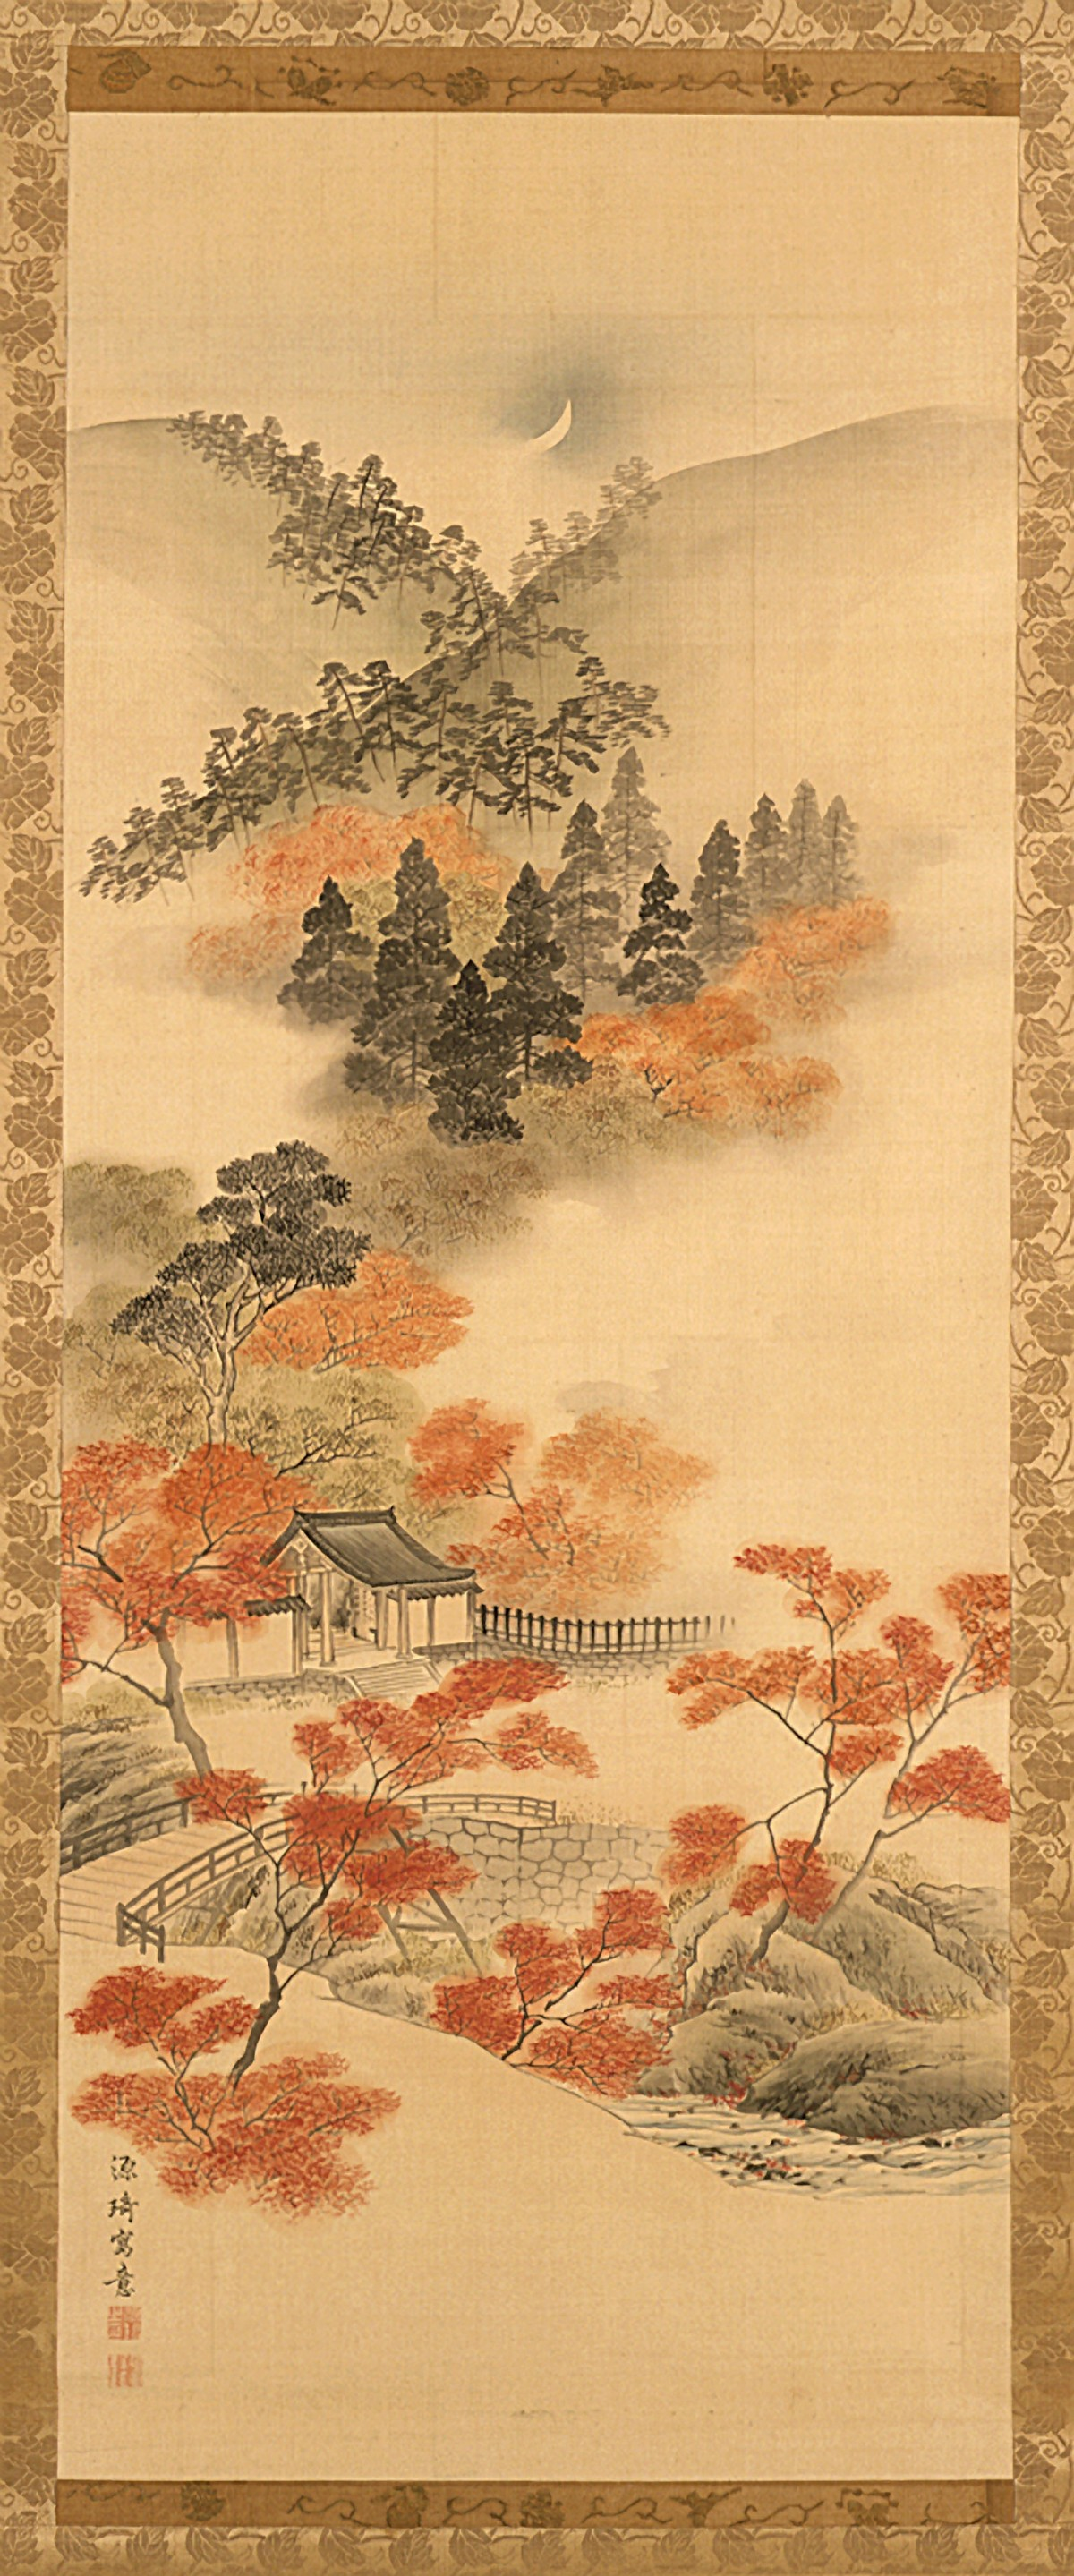 Japanese Painting: A Walk in Nature | LACMA